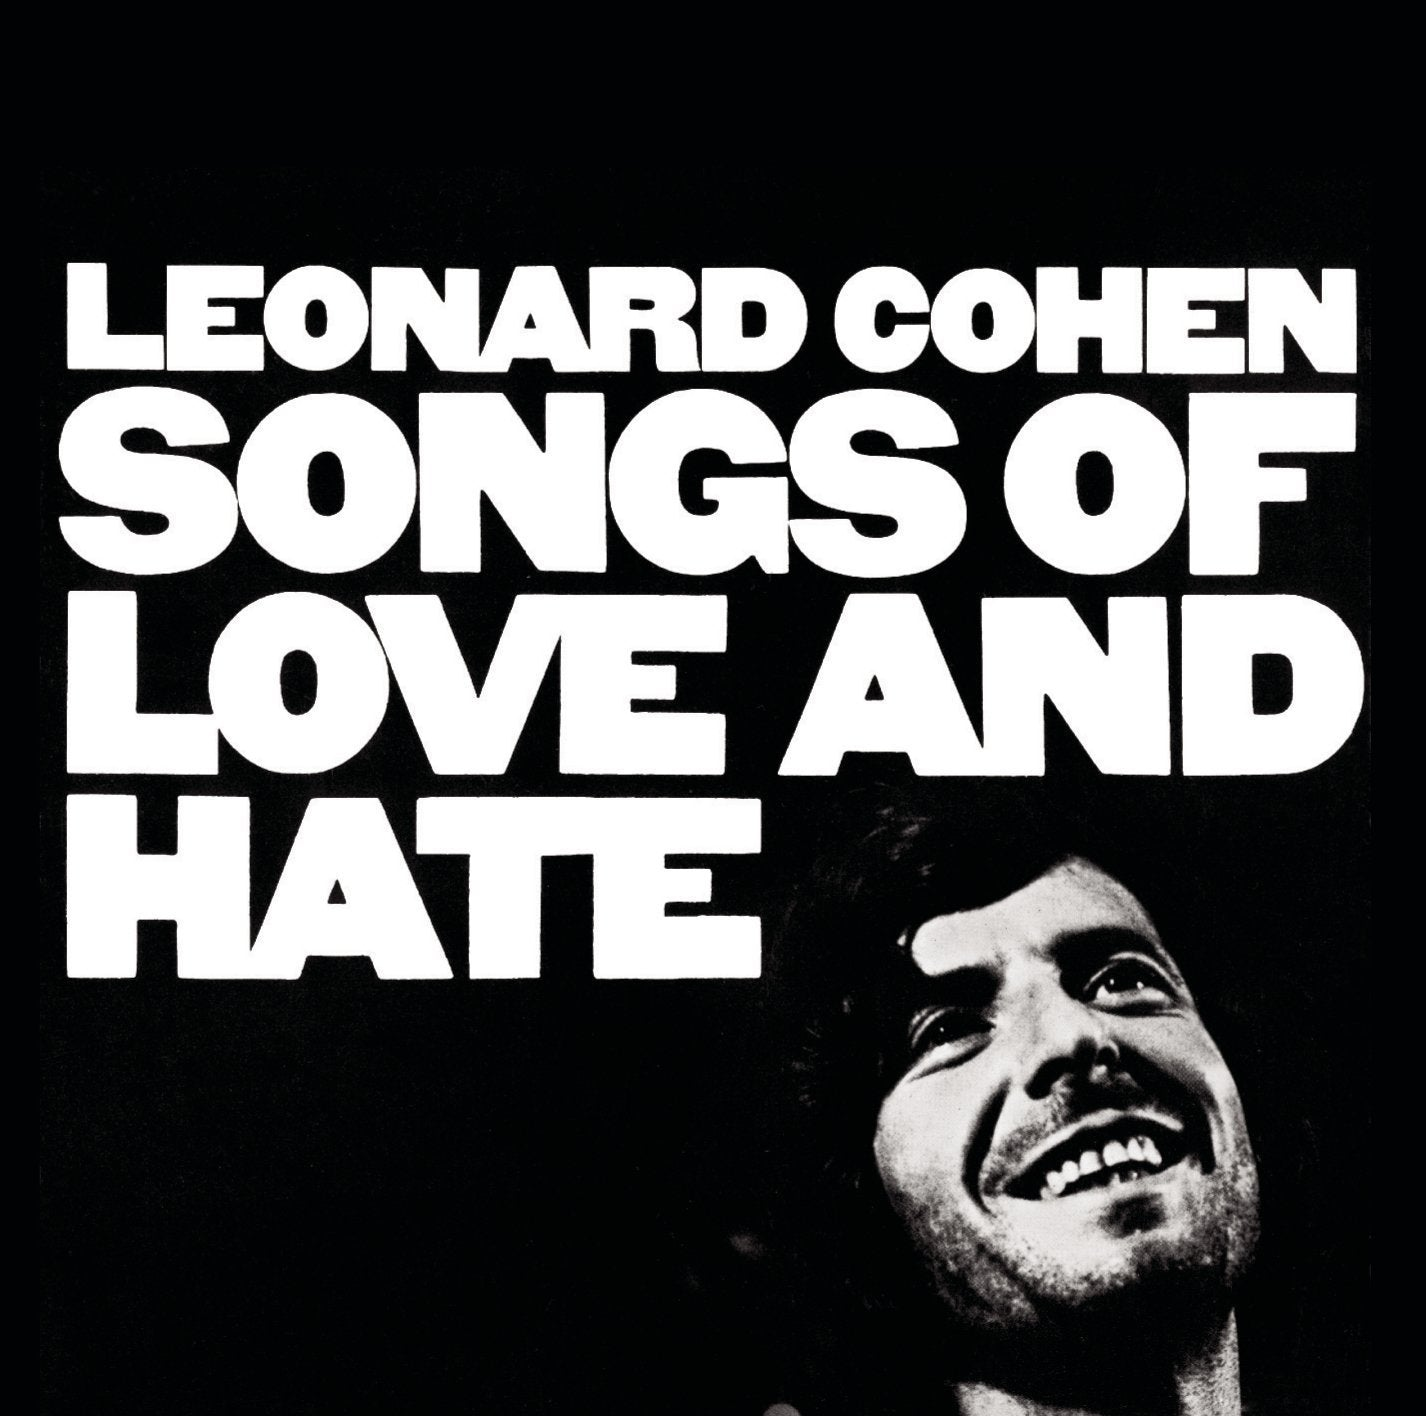 Cohen, Leonard/Songs of Love and Hate [LP]